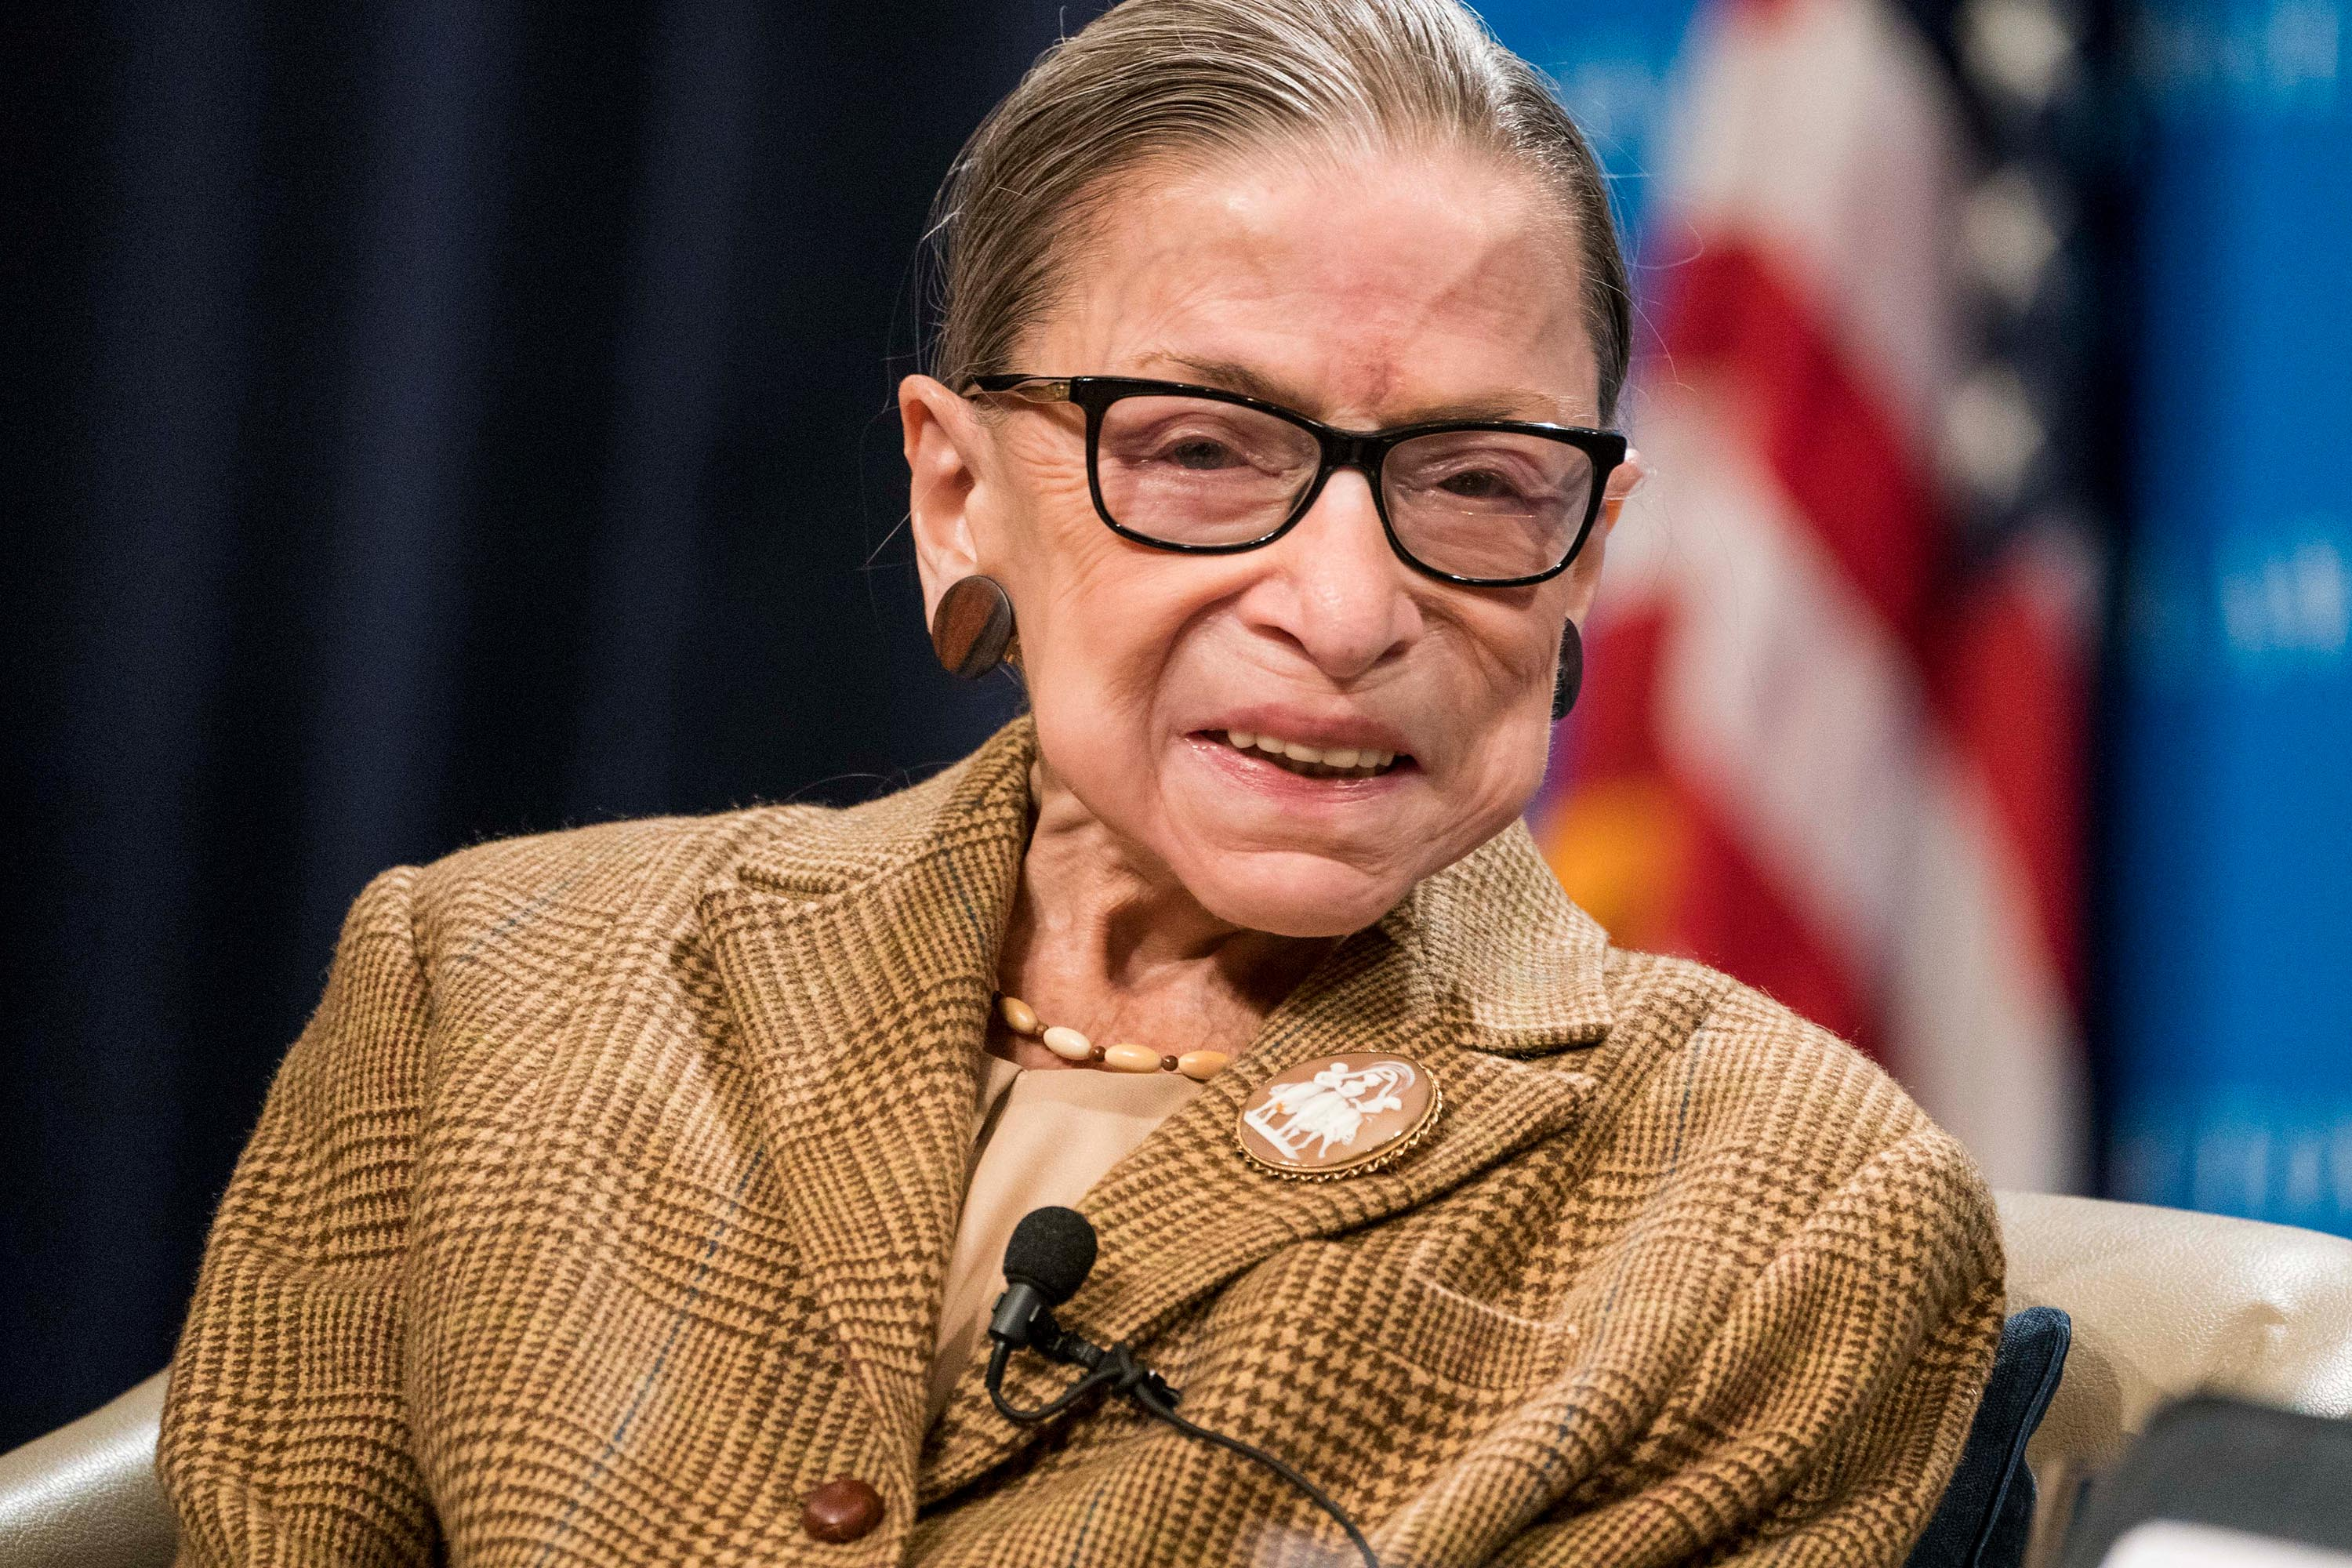 Ginsburg spent her final weeks living as if there'd be many more